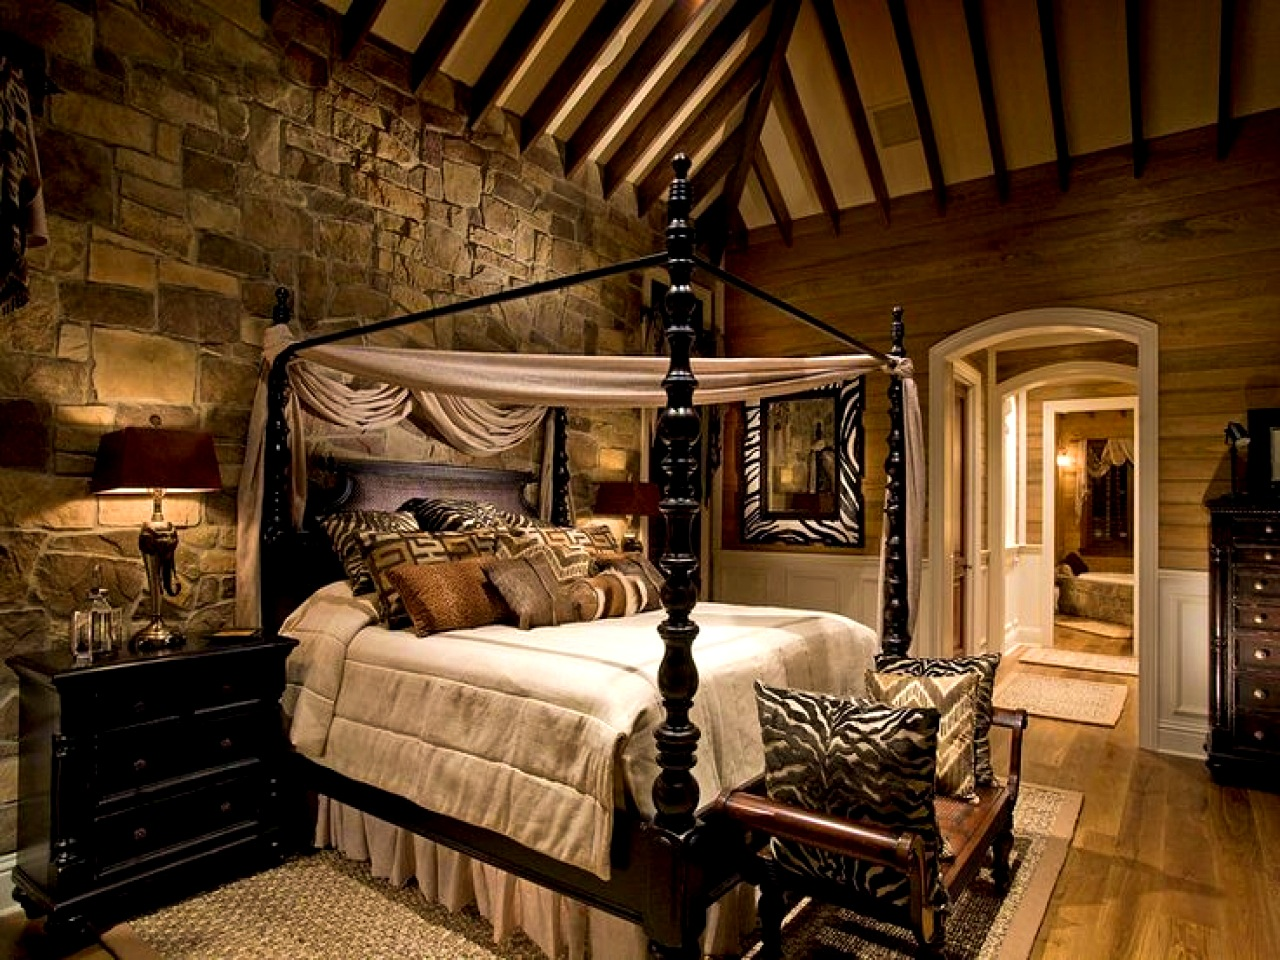 Rustic bedroom decorating ideas a guide to inspire and for Bedroom decor design ideas